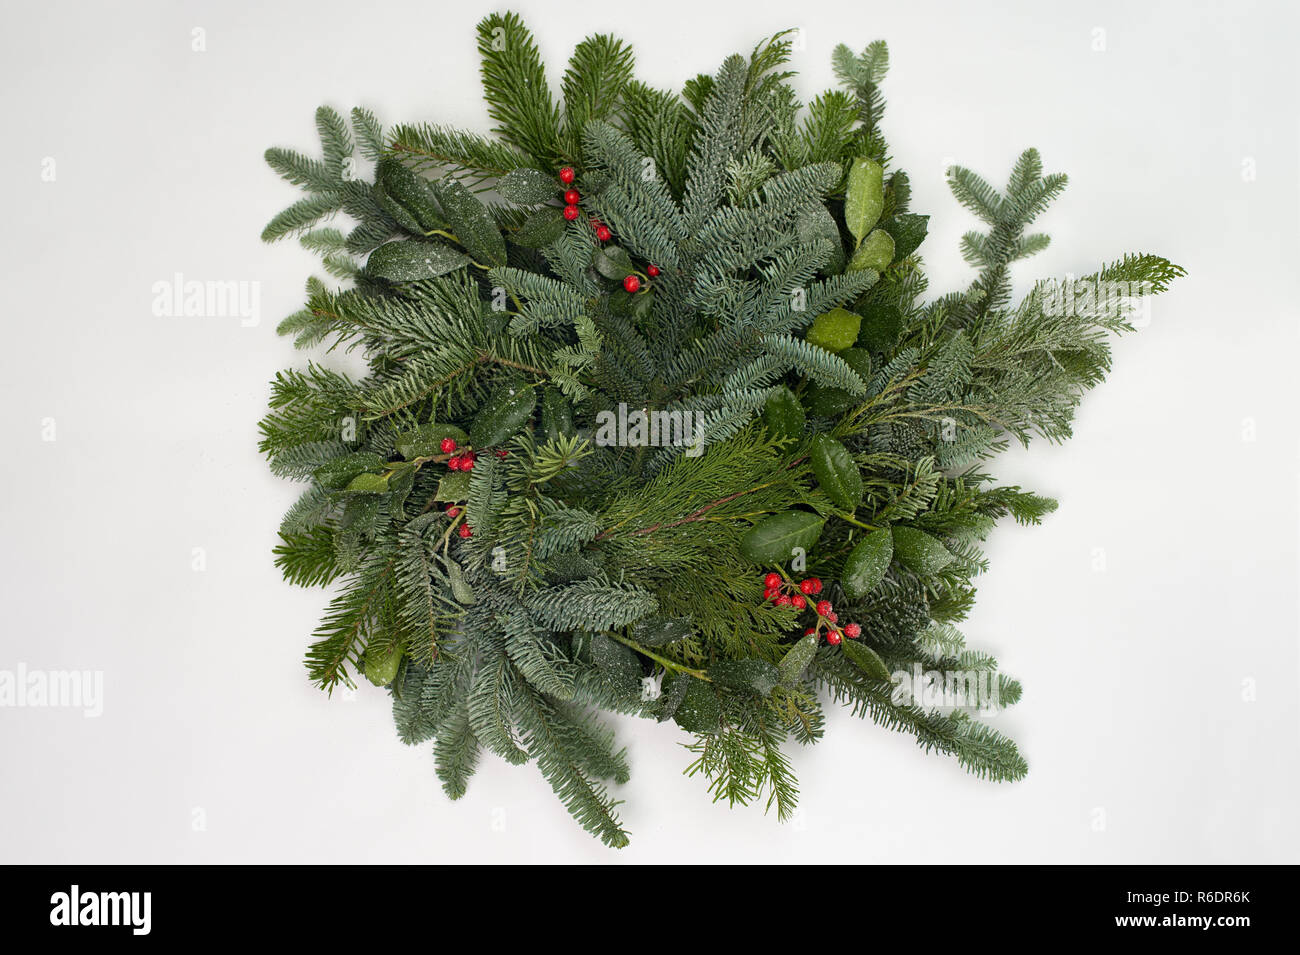 A circle of branches of different fir varieties. Green and blue Nordmann fir branches, coniferous branches and holly (Ilex) lie on white paper backgro - Stock Image